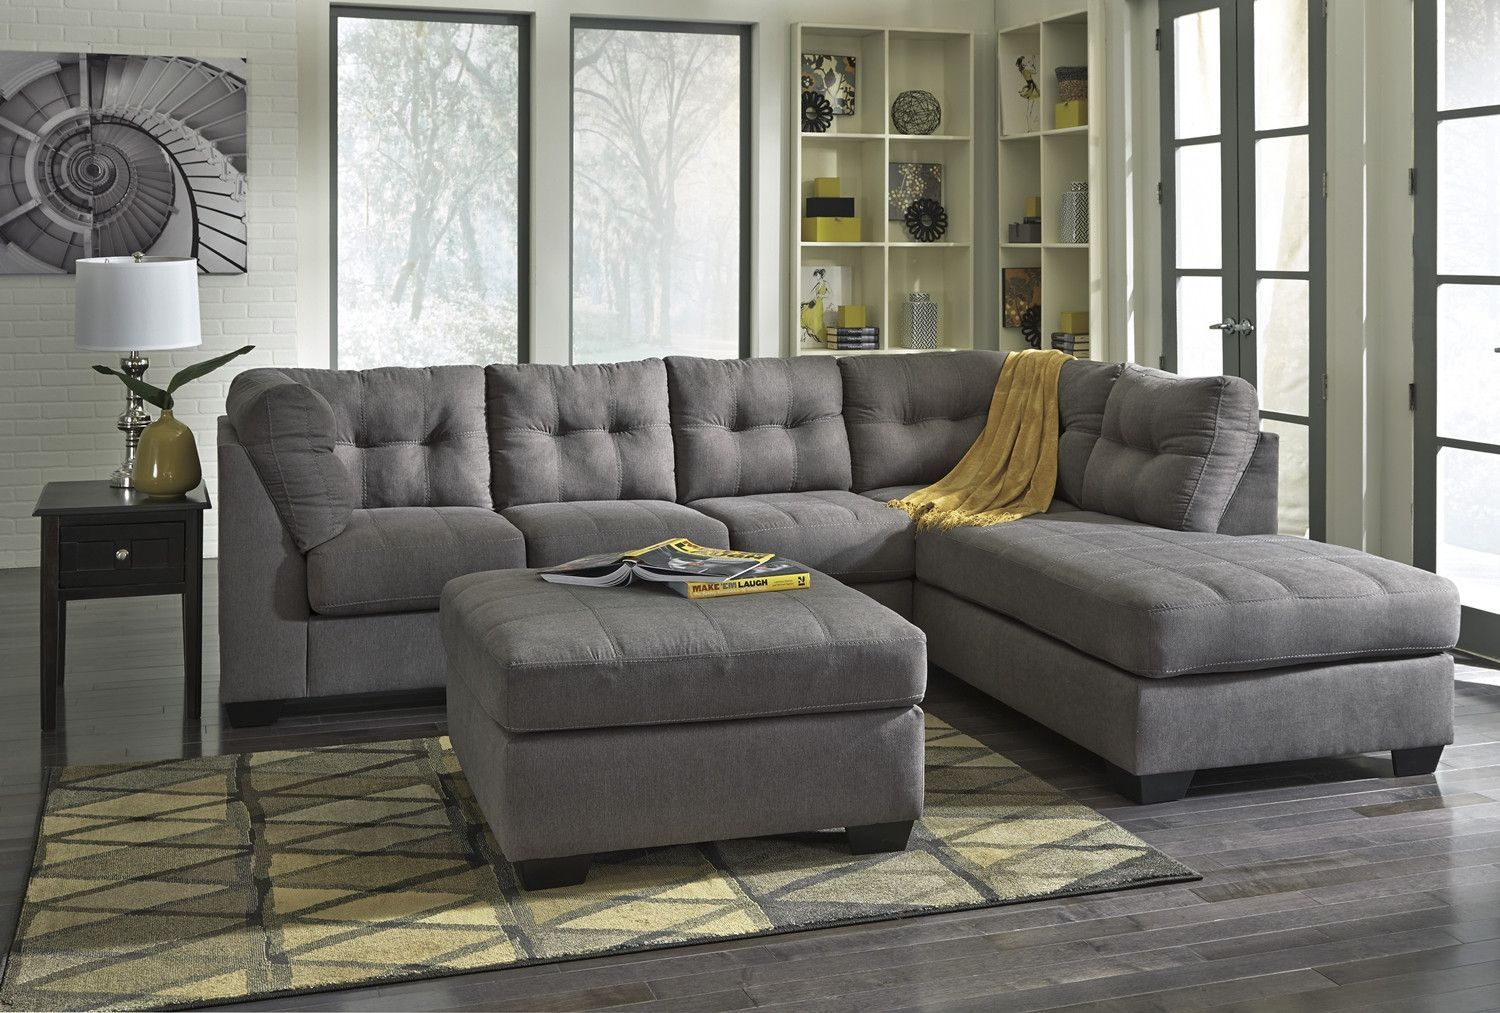 Ashley Furniture · Sectional Frame constructions have been rigorously tested to simulate the home and transportation environments for improved durability. Corners are glued blocked and stapled. Seats